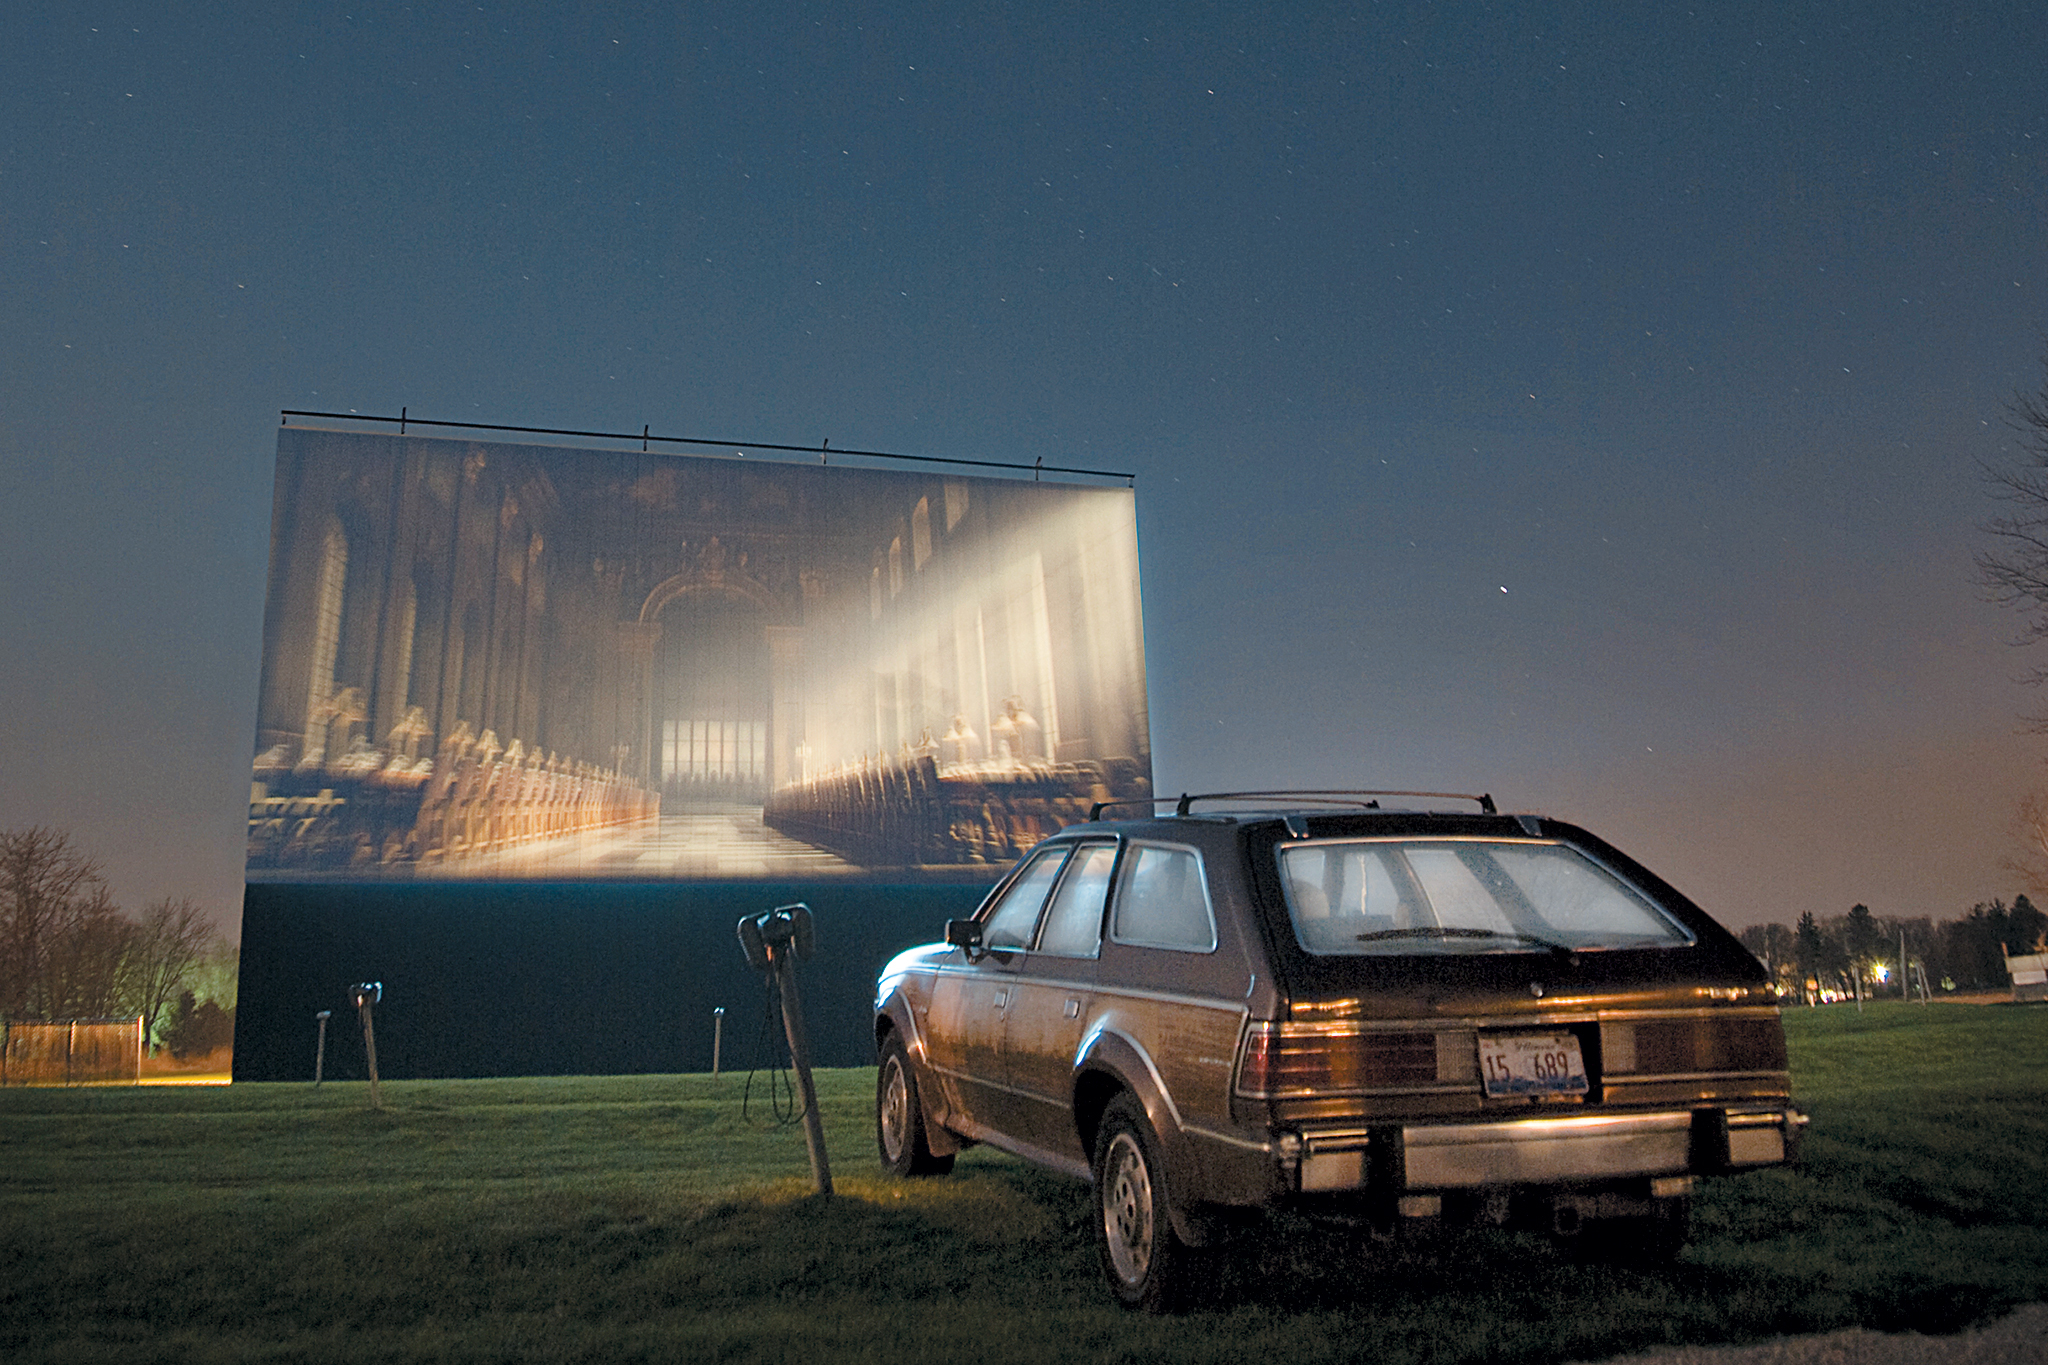 Drive-in movie theater: Cascade Drive-In